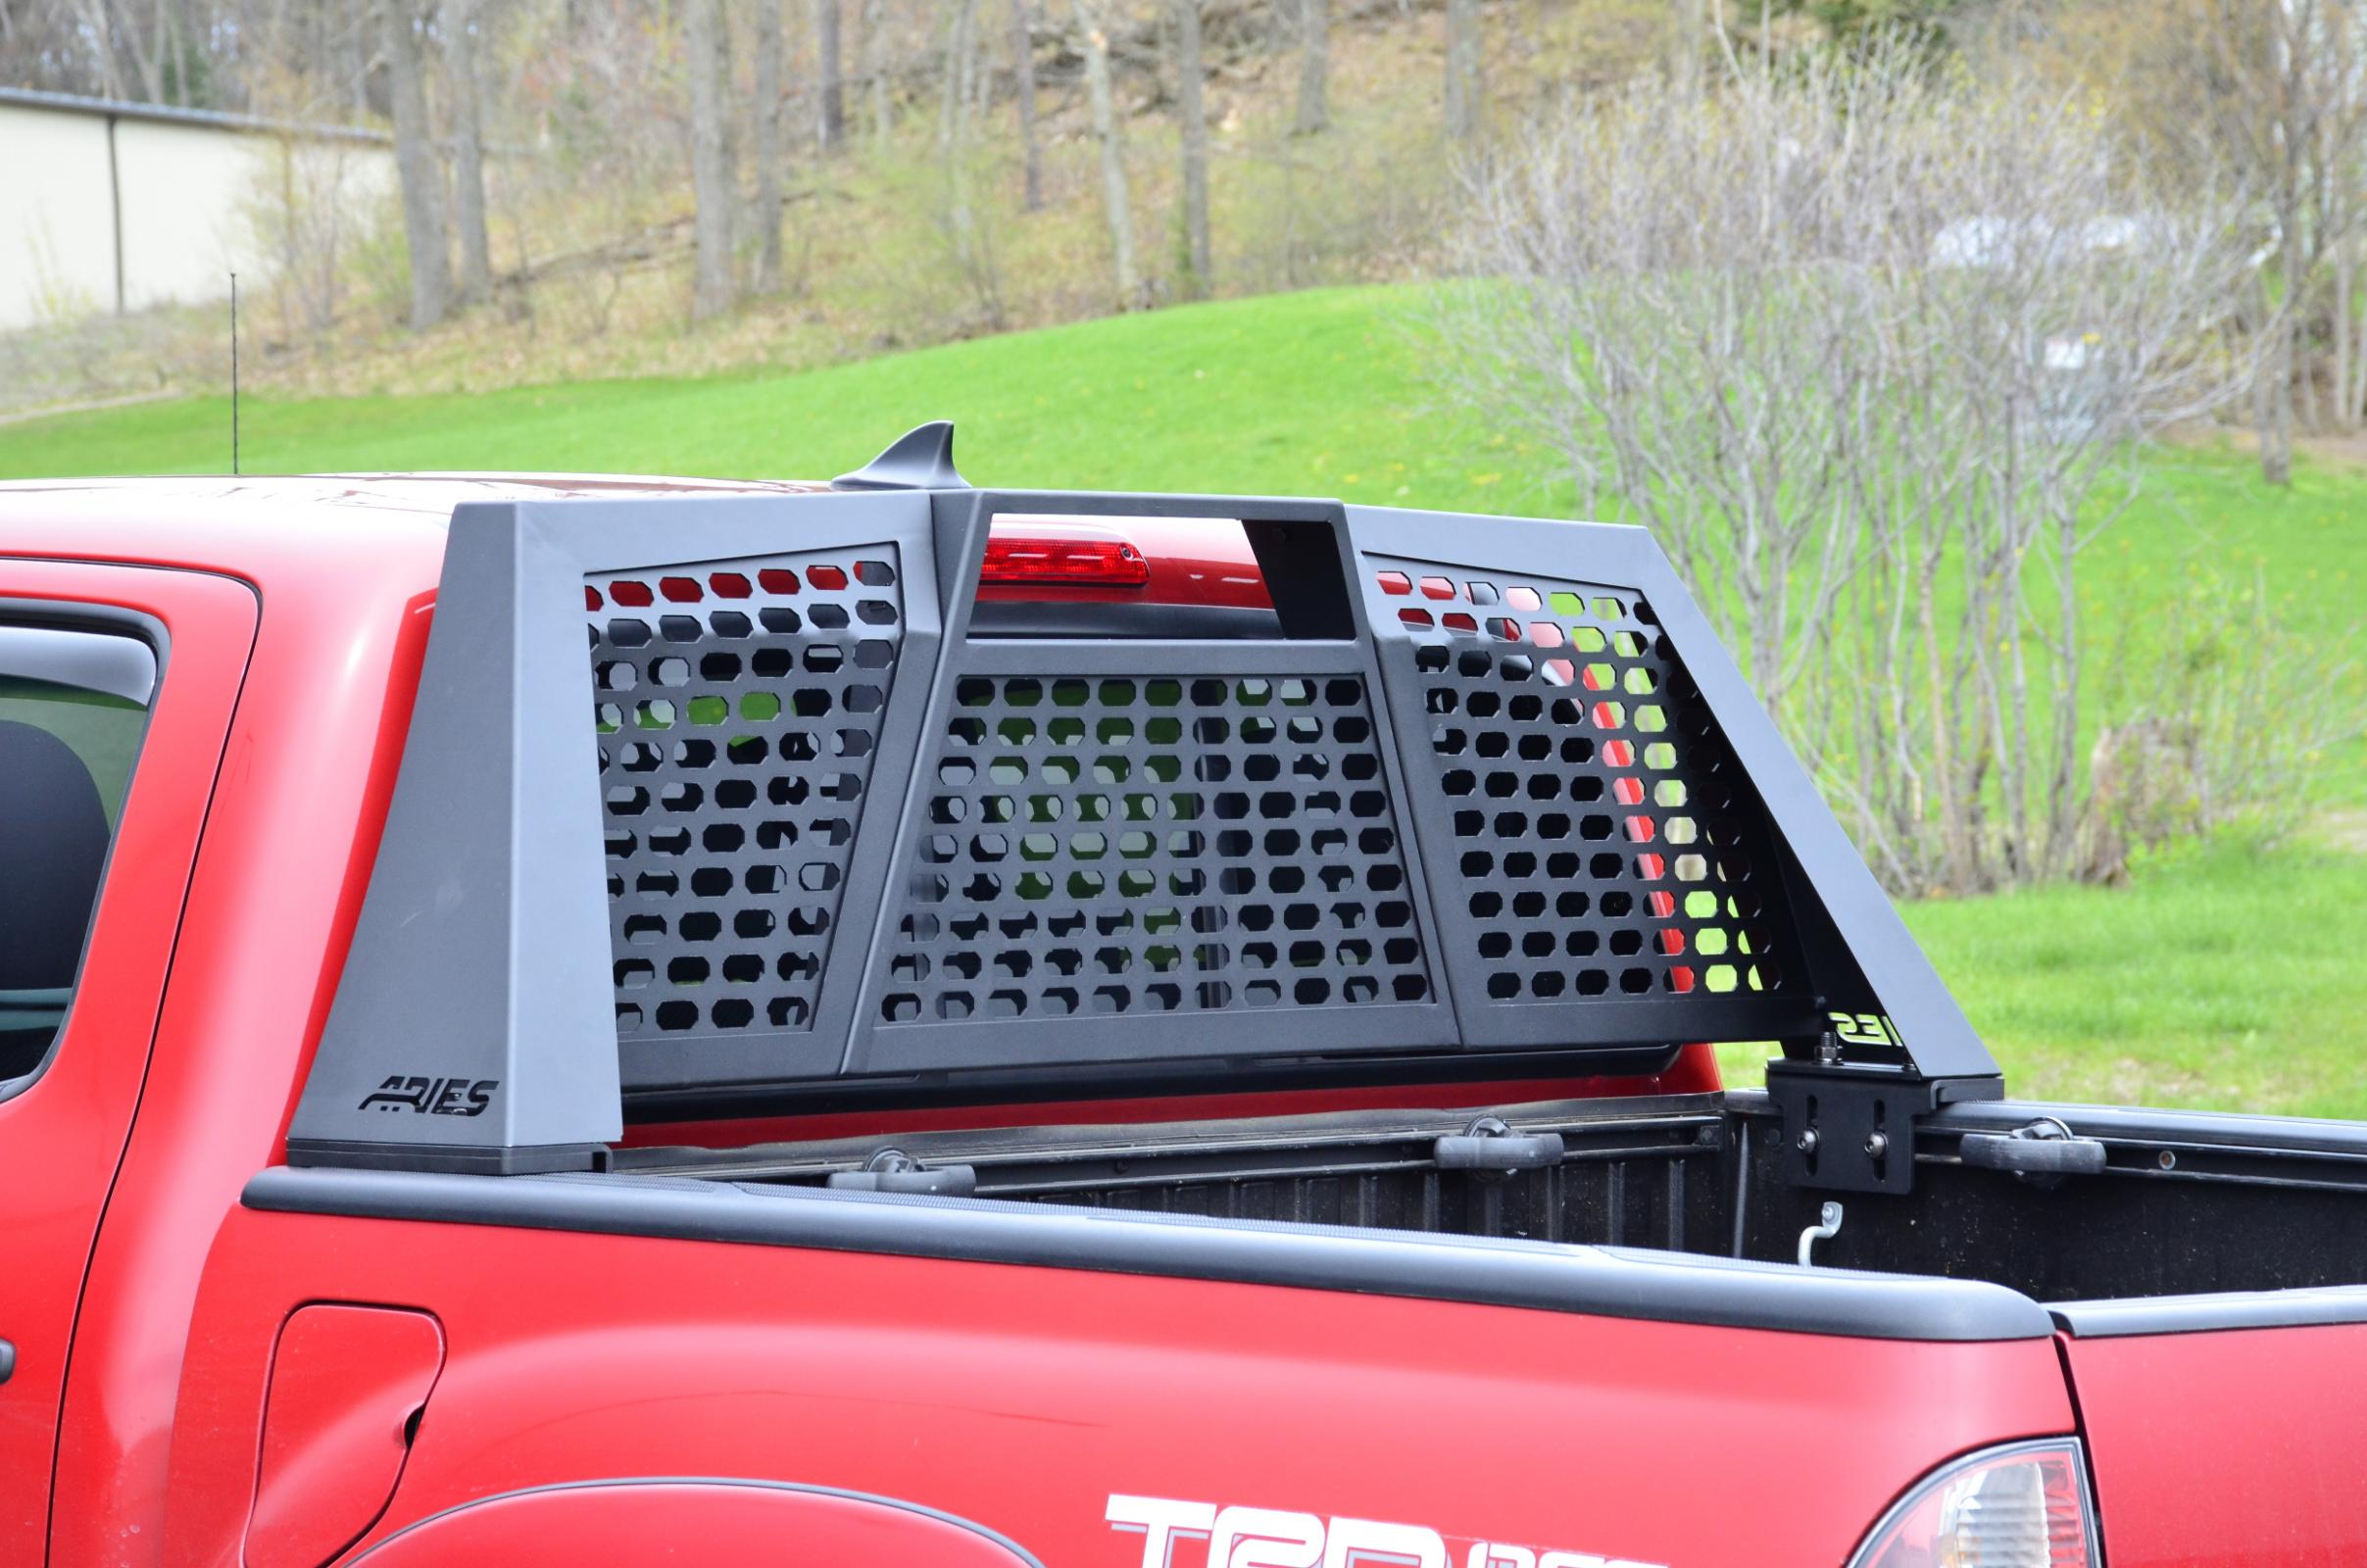 New Aggressive Lightweight Easy To Ship Headache Rack Atv F150 With A Fast Paced Marketer And Innovator Of Truck Jeep Suv Cuv Accessories Has Released Highly Functional Edgy Looking Called